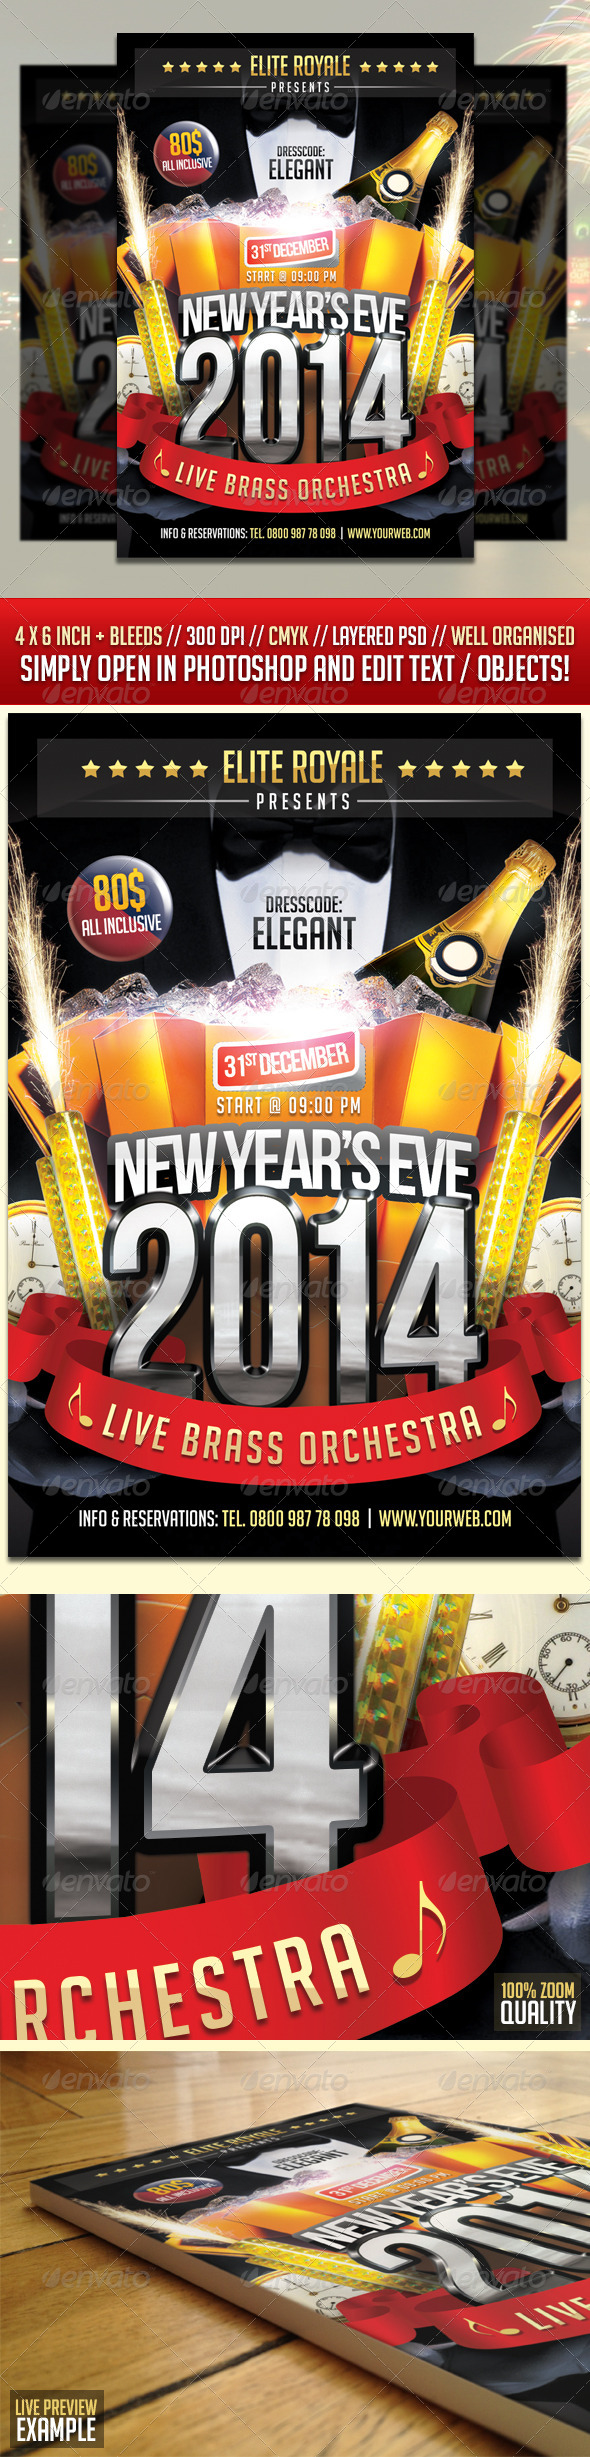 New Year Eve Elegant Party Flyer - Holidays Events